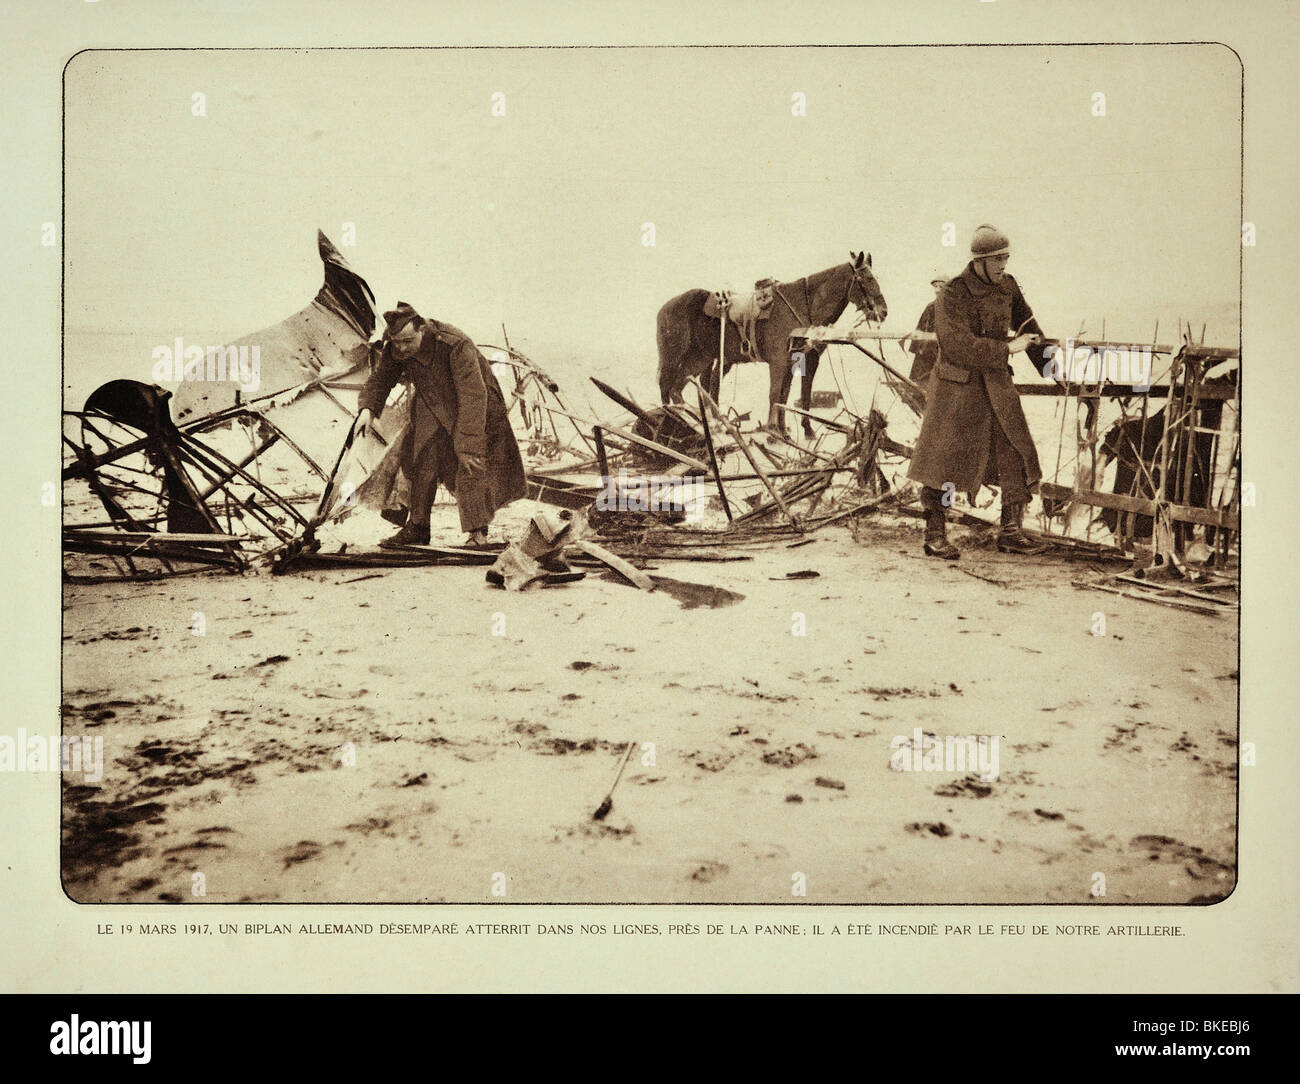 WW1 Belgian soldiers examining crashed biplane near De Panne, West Flanders during the First World War One, Belgium - Stock Image